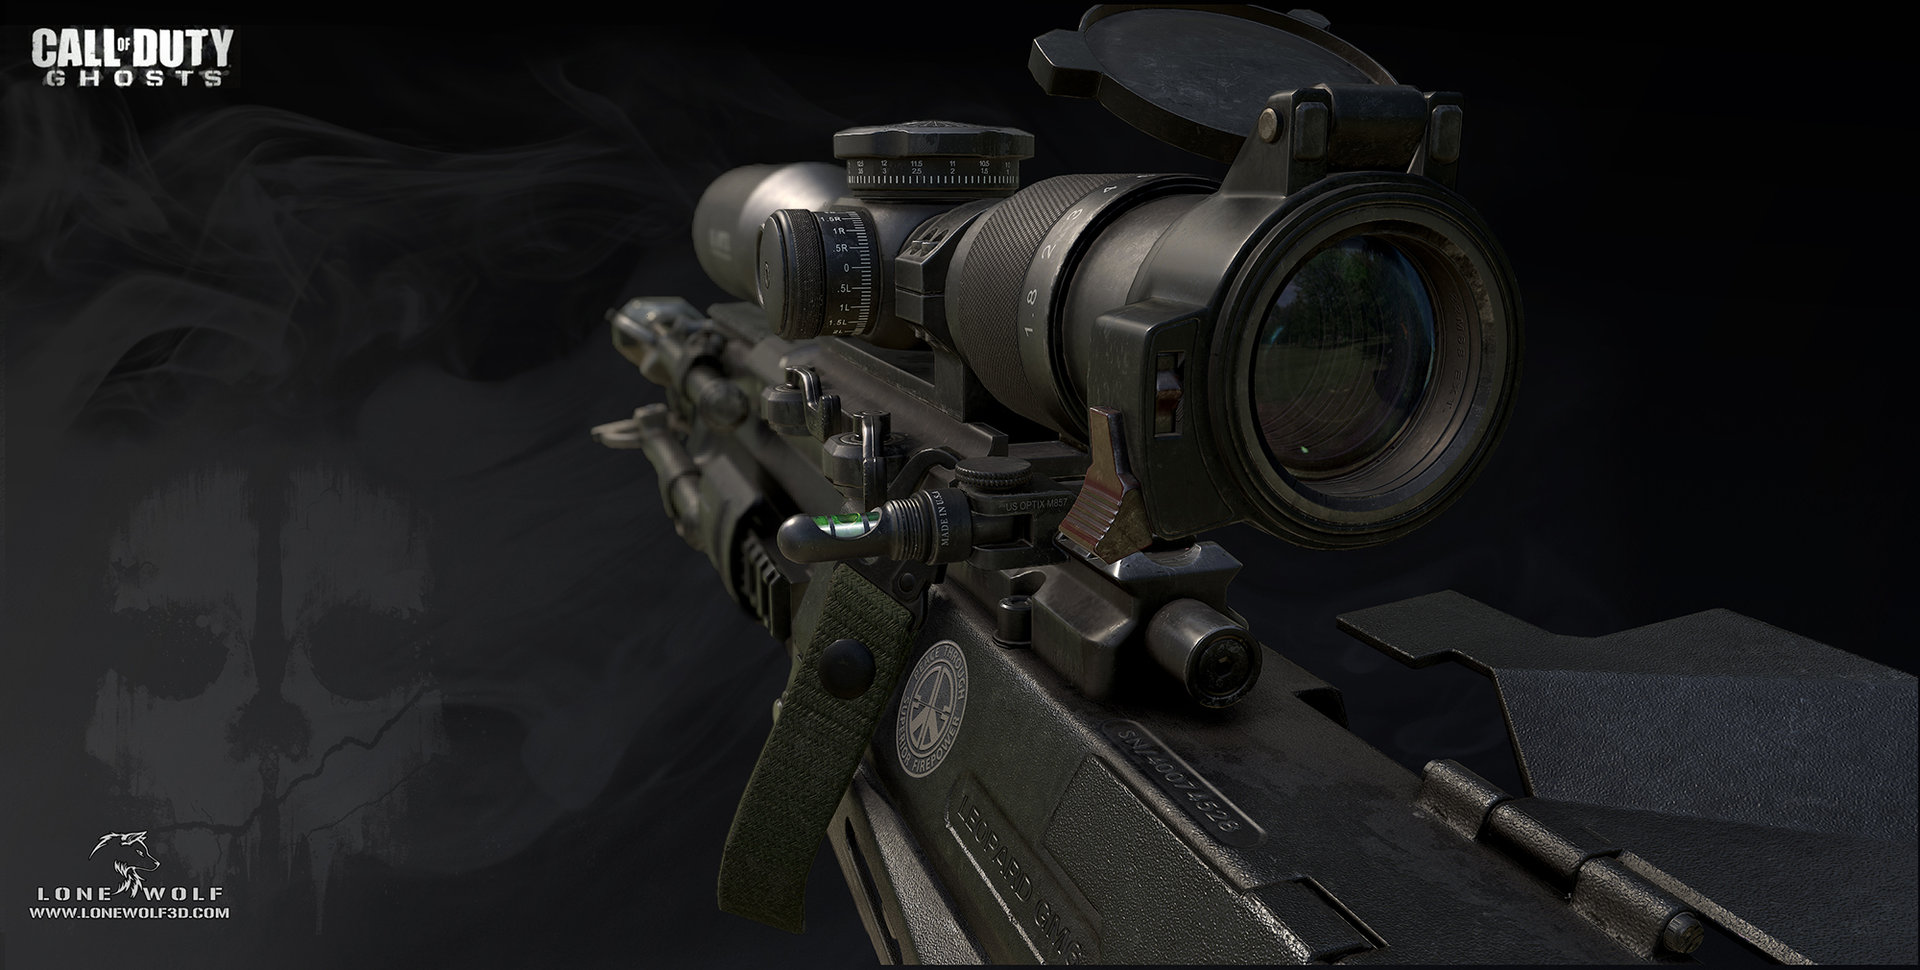 Call of duty ghosts gm6 model 01